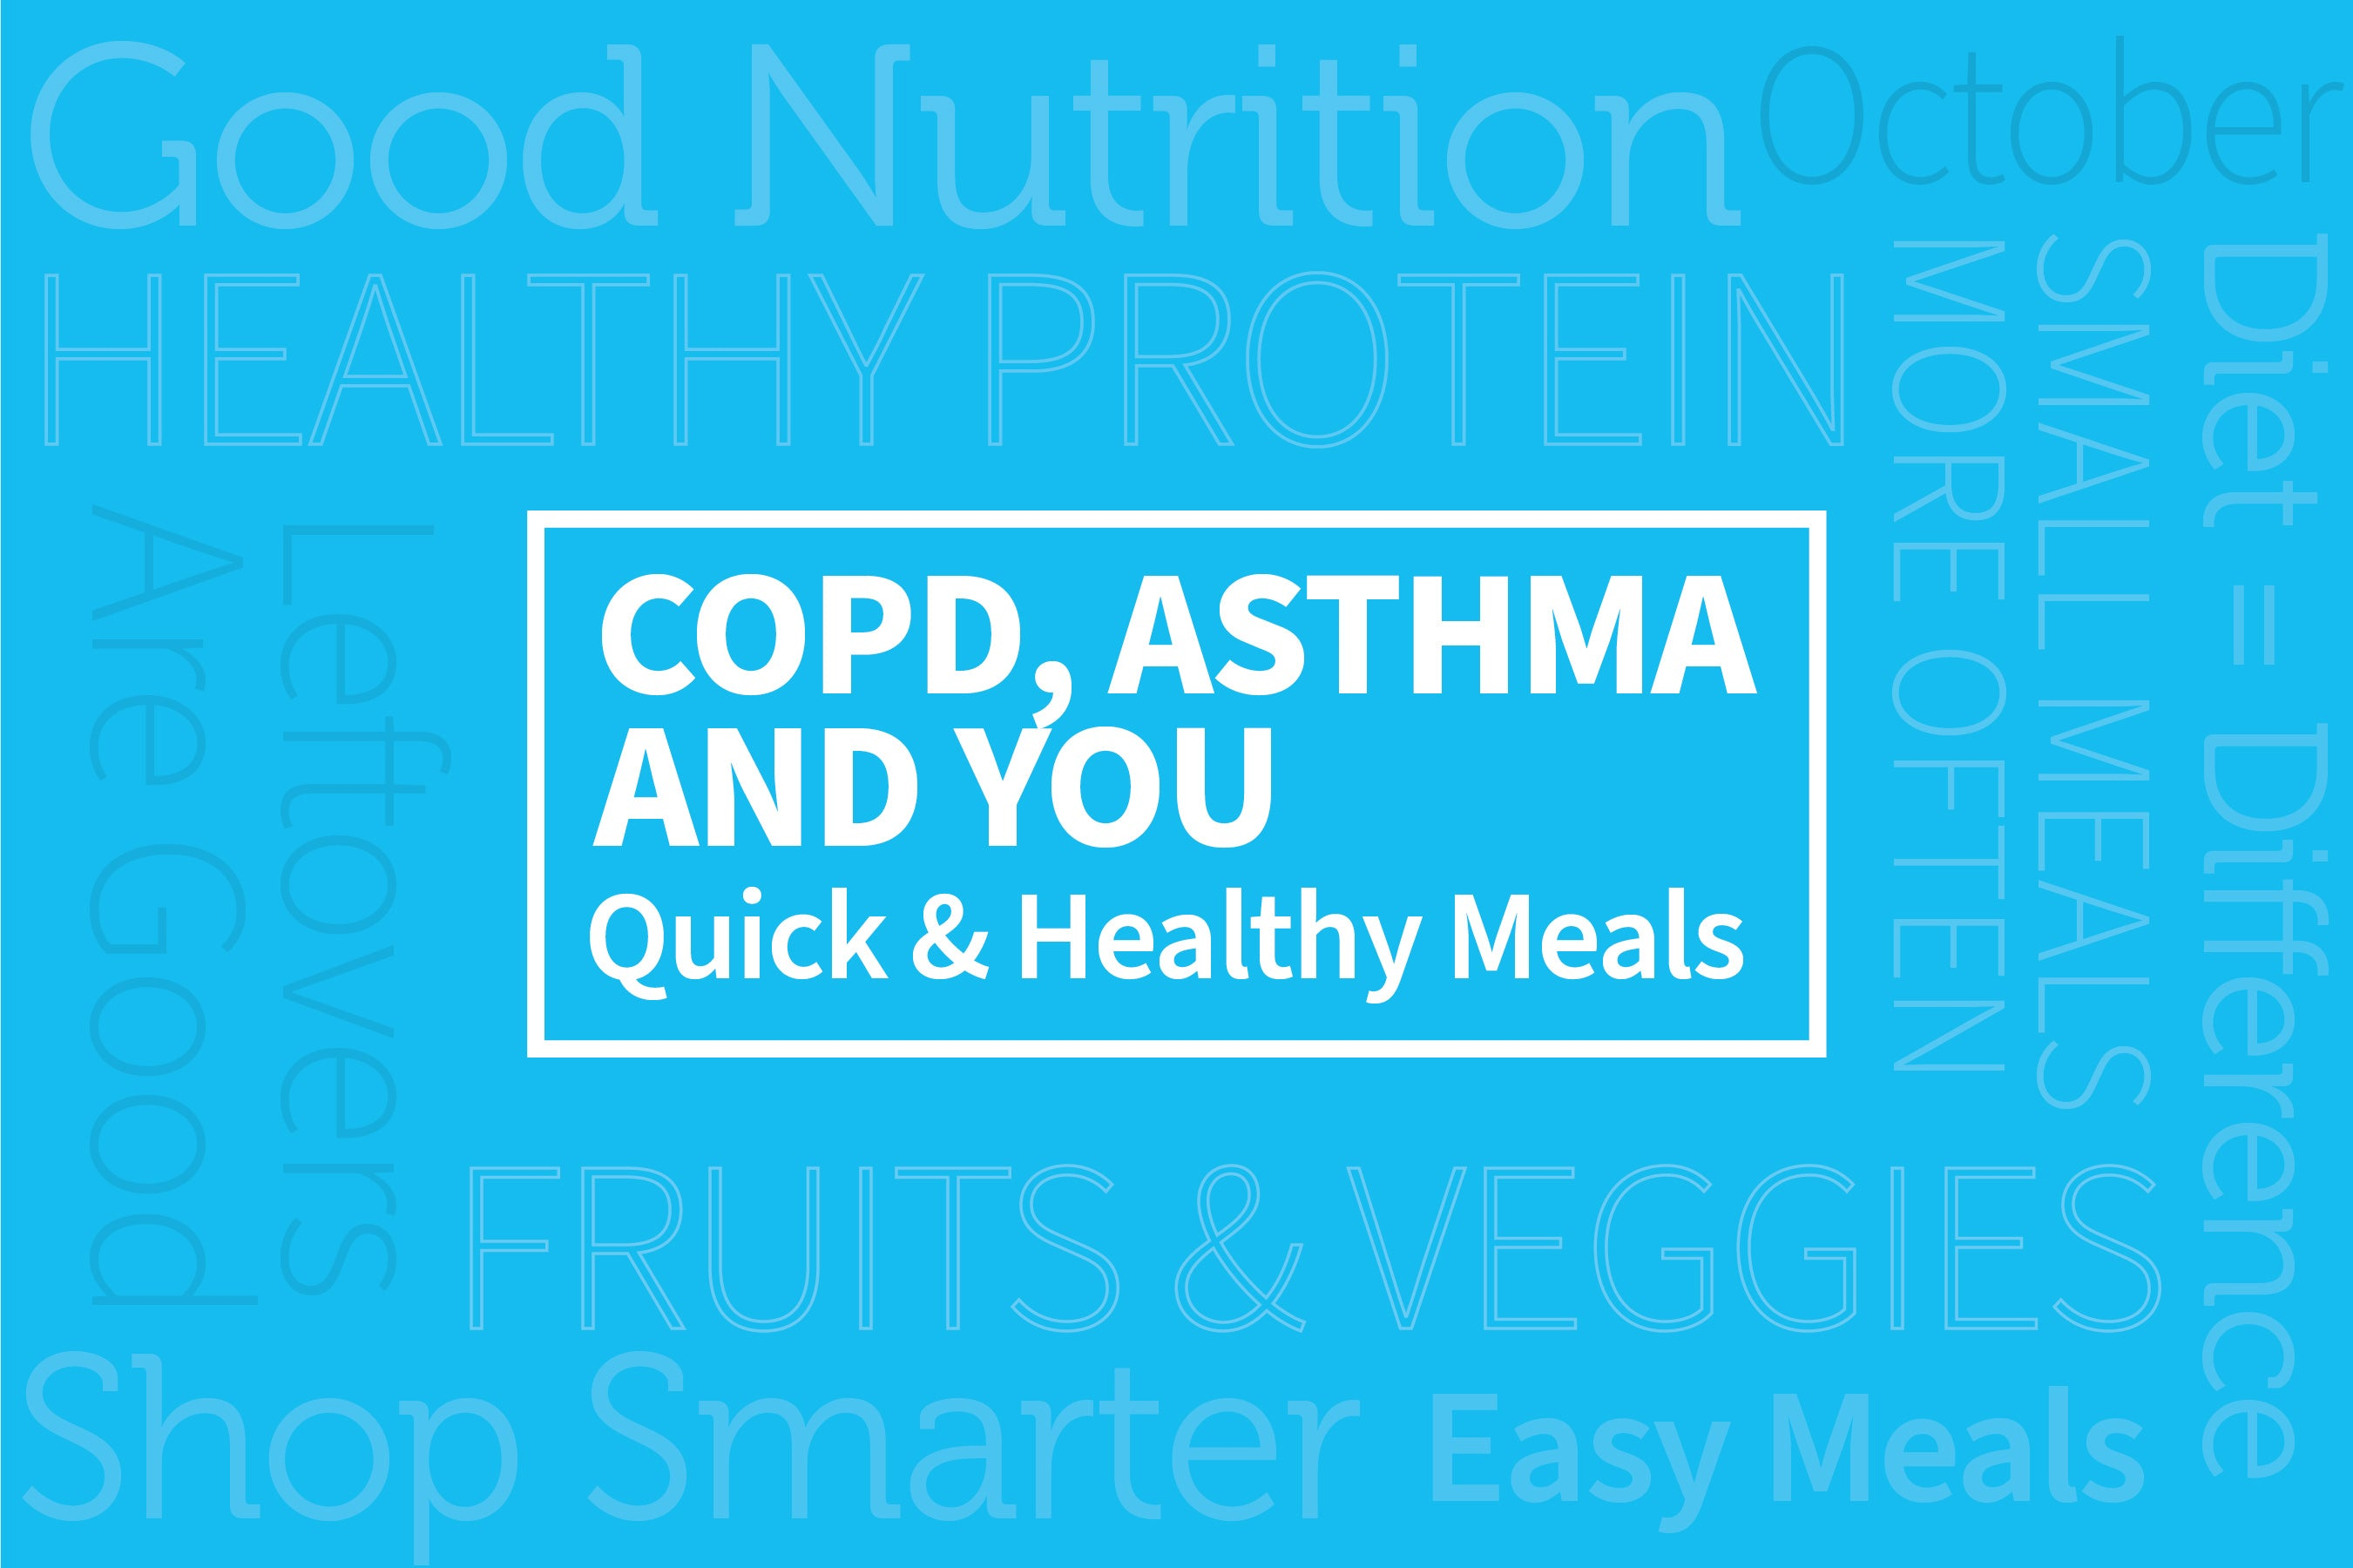 COPD, Asthma, and YOU: Quick and Healthy Meals